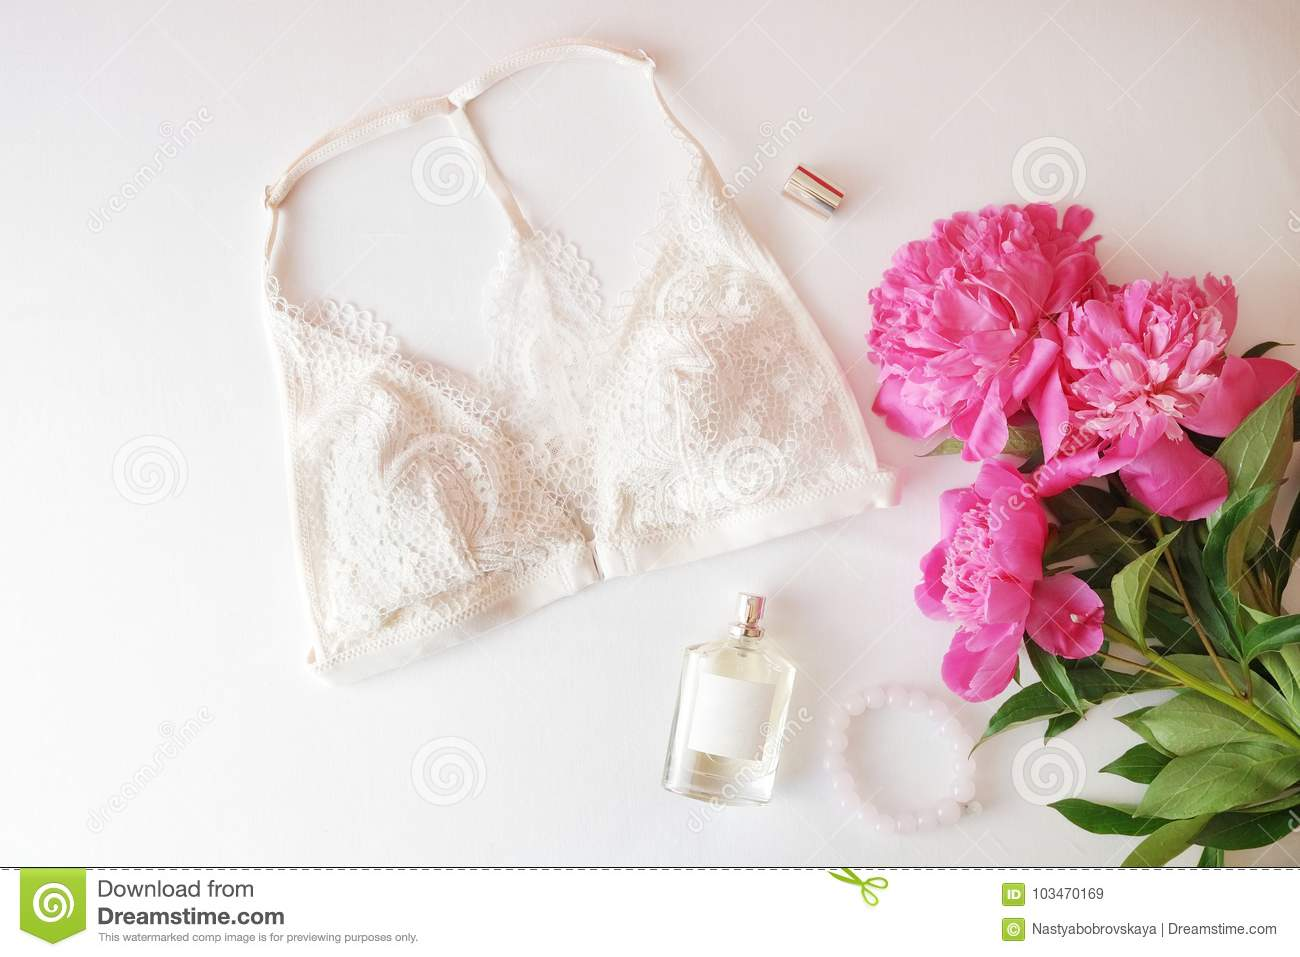 f348fc386b51 Woman clothes and accessories: pink top, jeans skirt, perfume, sandals,  sunglasses, hat, lipstick on white background. Flat lay trendy fashion  feminine ...